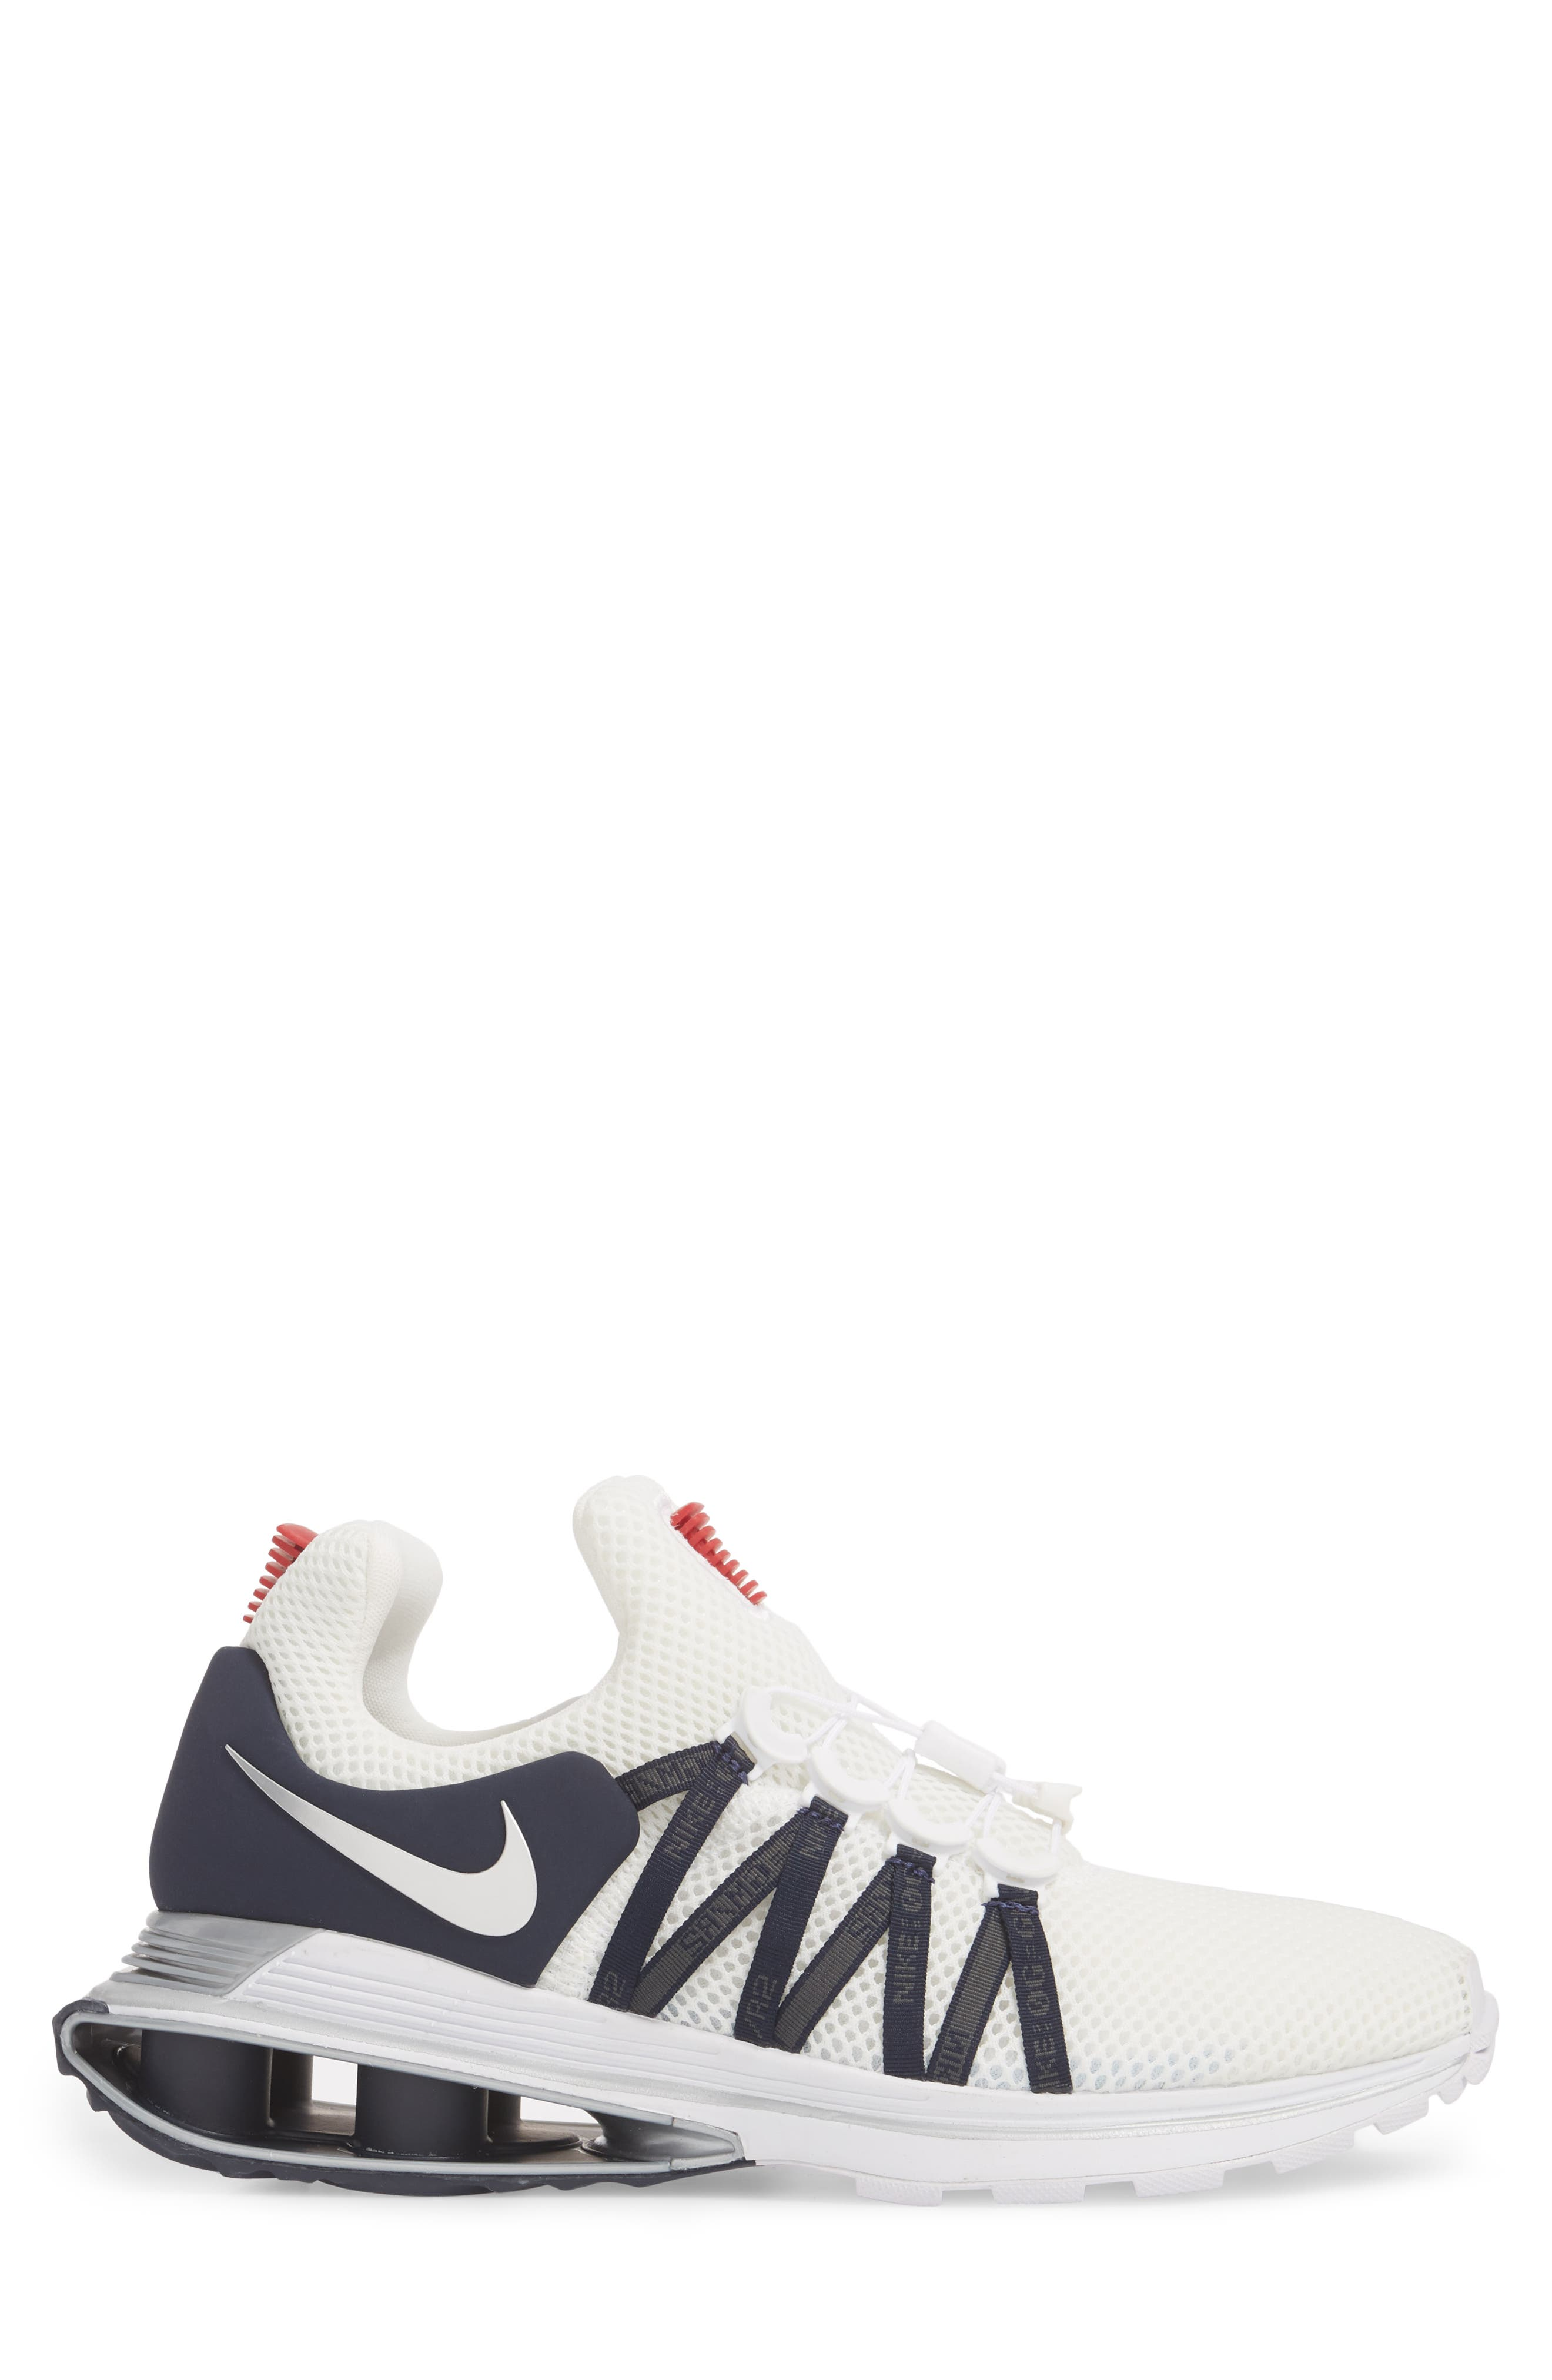 Shox Gravity Sneaker,                             Alternate thumbnail 3, color,                             WHITE/ METALLIC SILVER